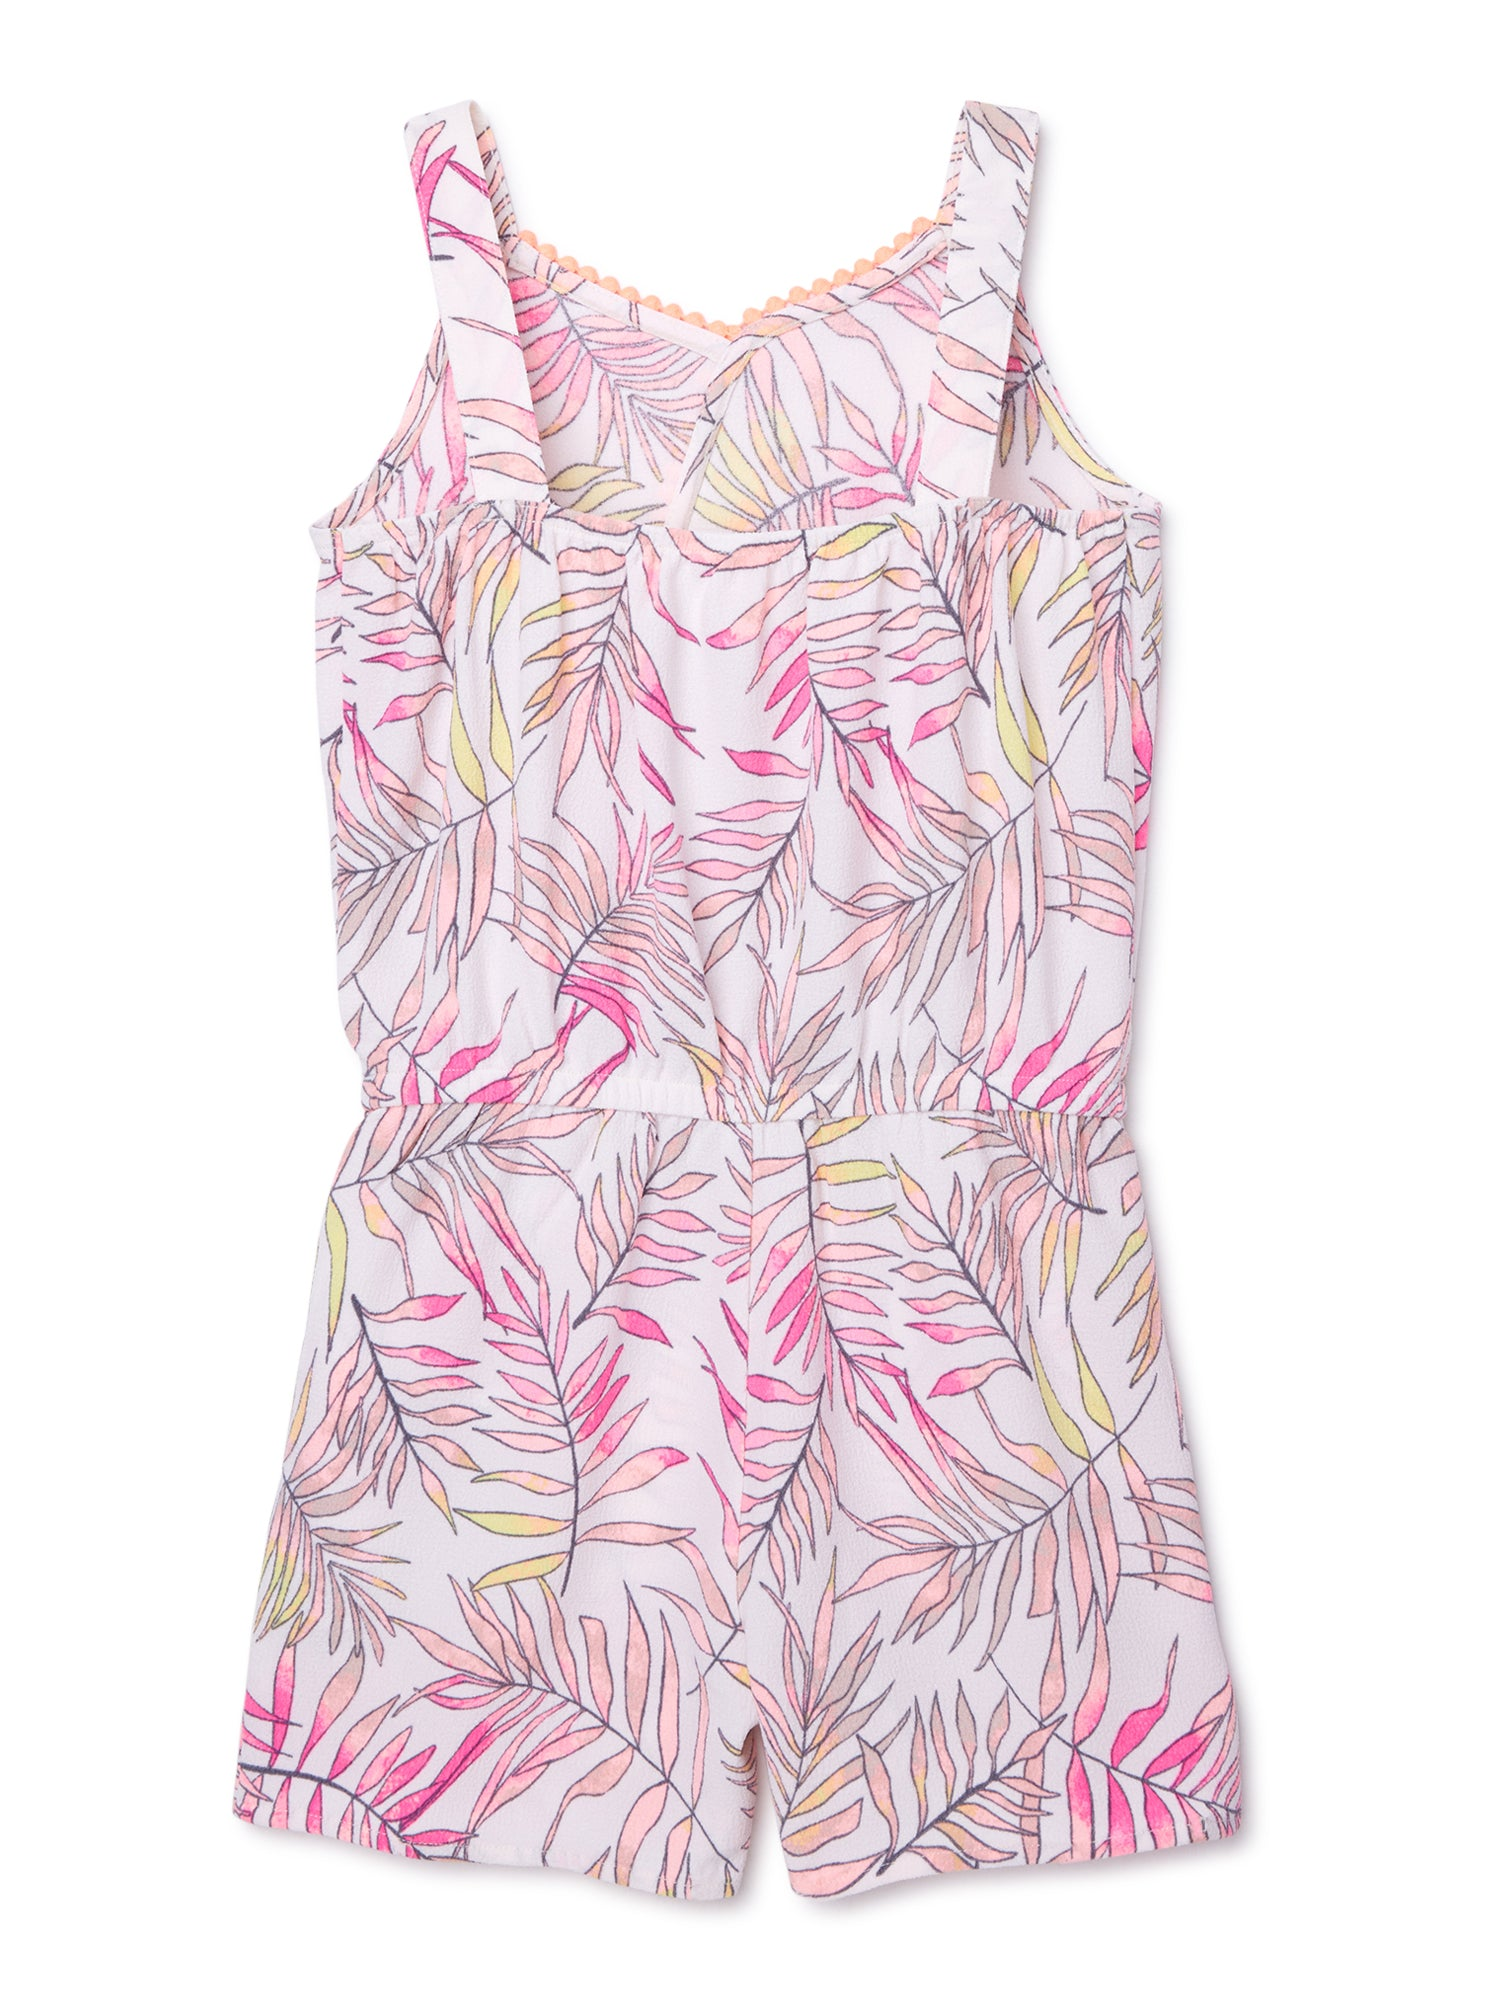 Tropical Print Tie-Front Romper - FLJ CORPORATIONS